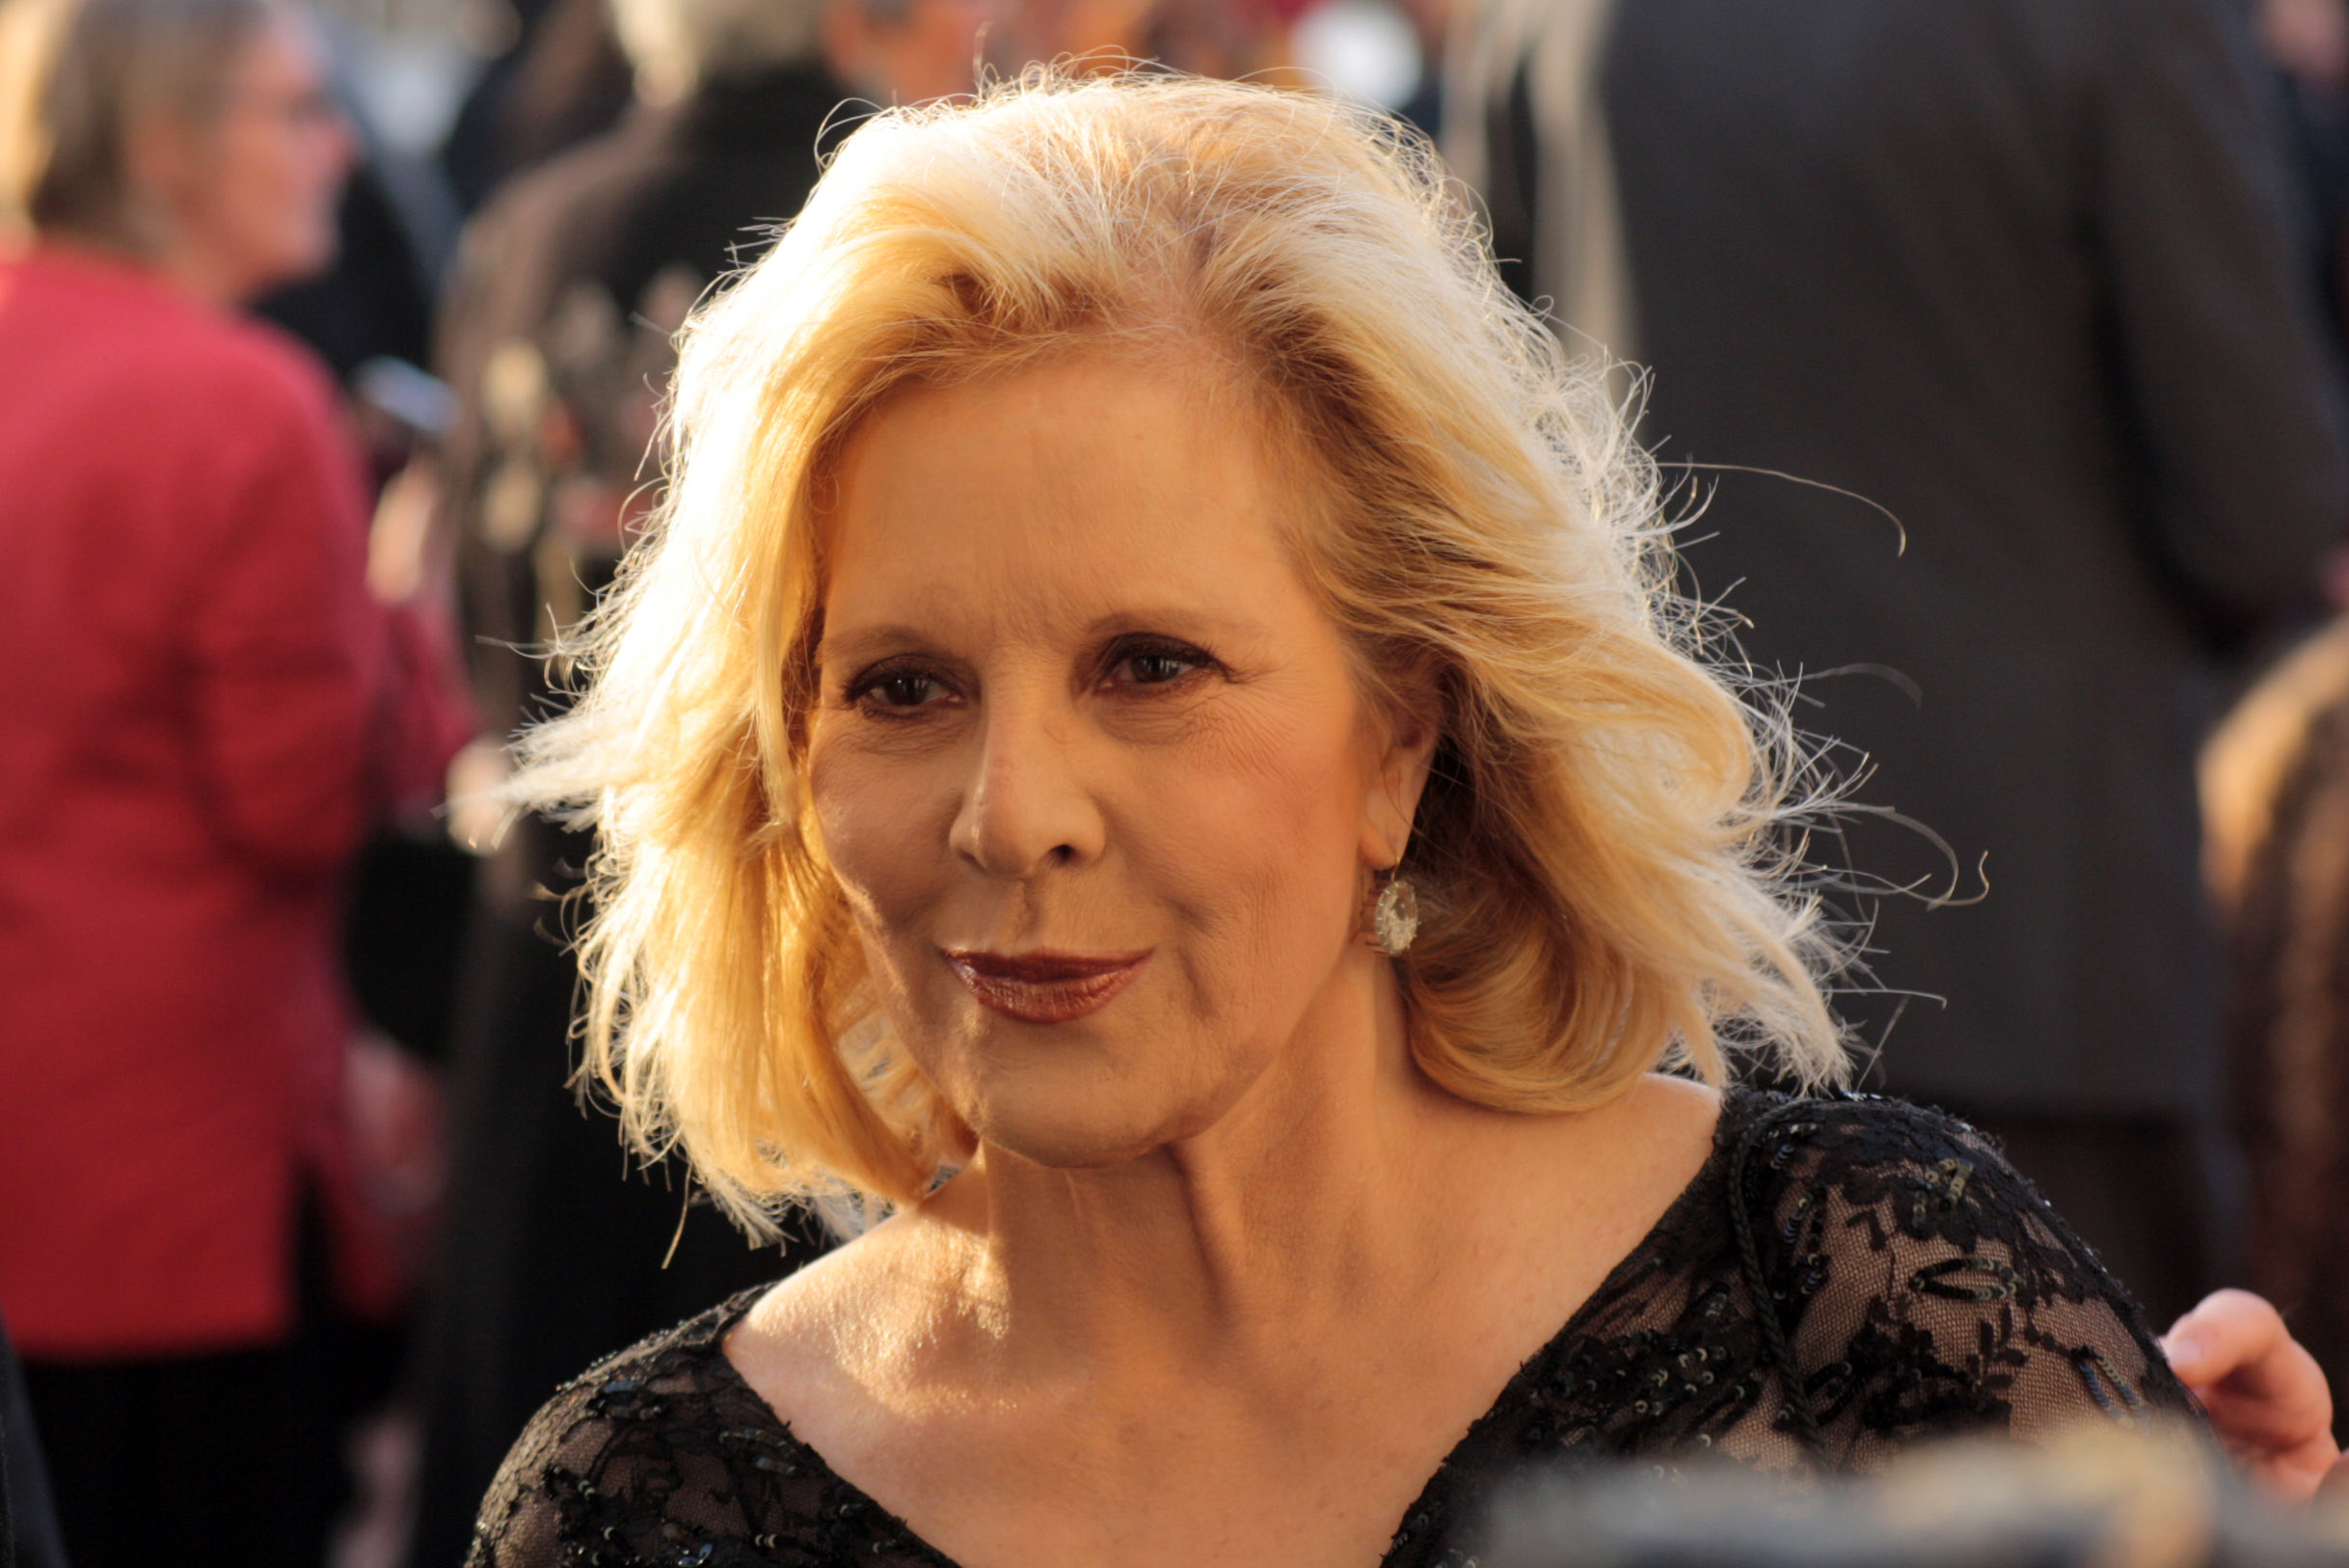 Image result for sYLVIE VARTAN TODAY